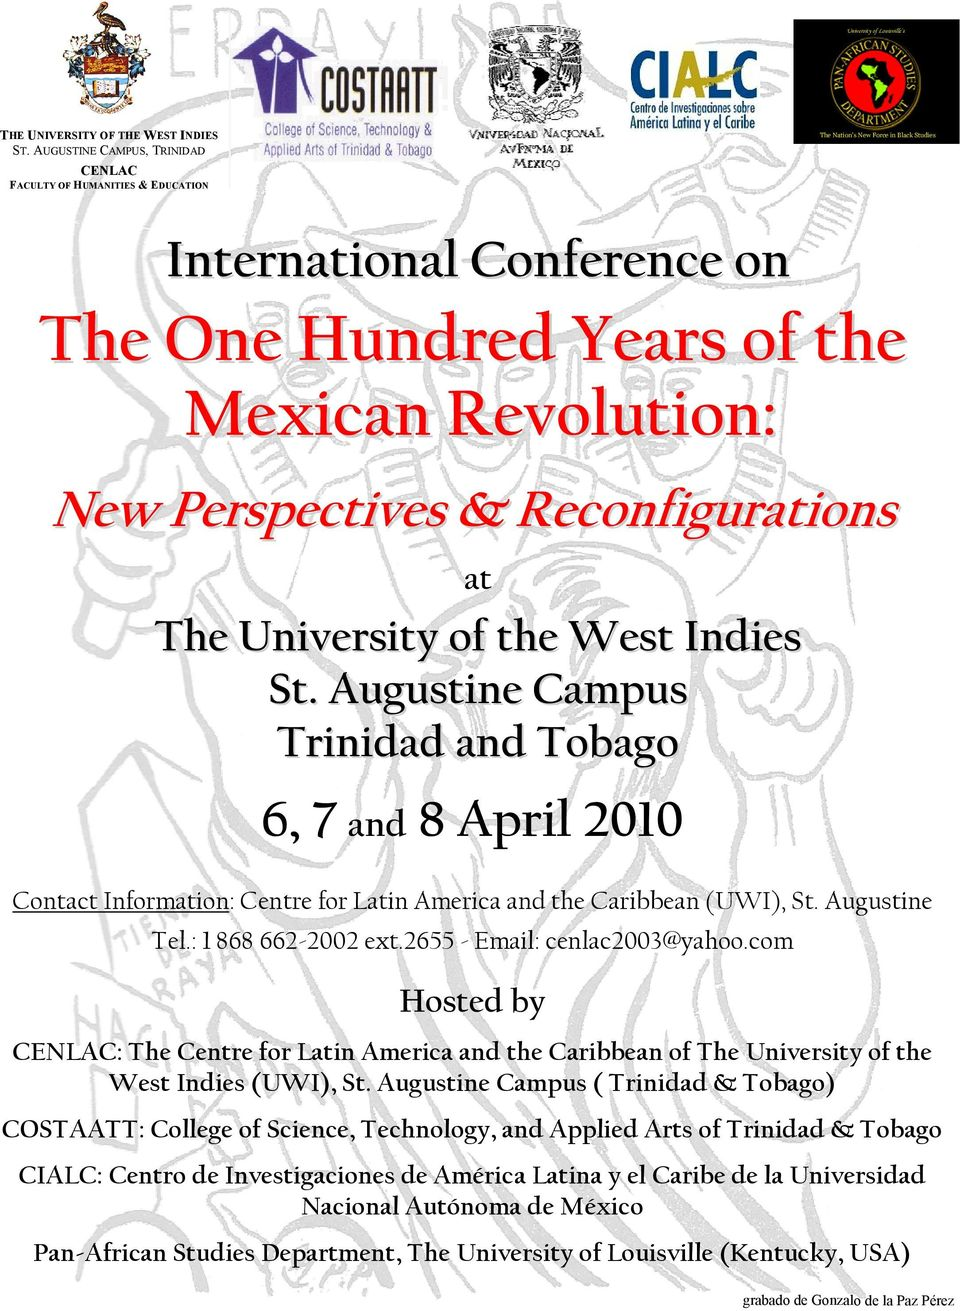 com Hosted by : The Centre for Latin America and the Caribbean of The University of the West Indies (UWI), St.